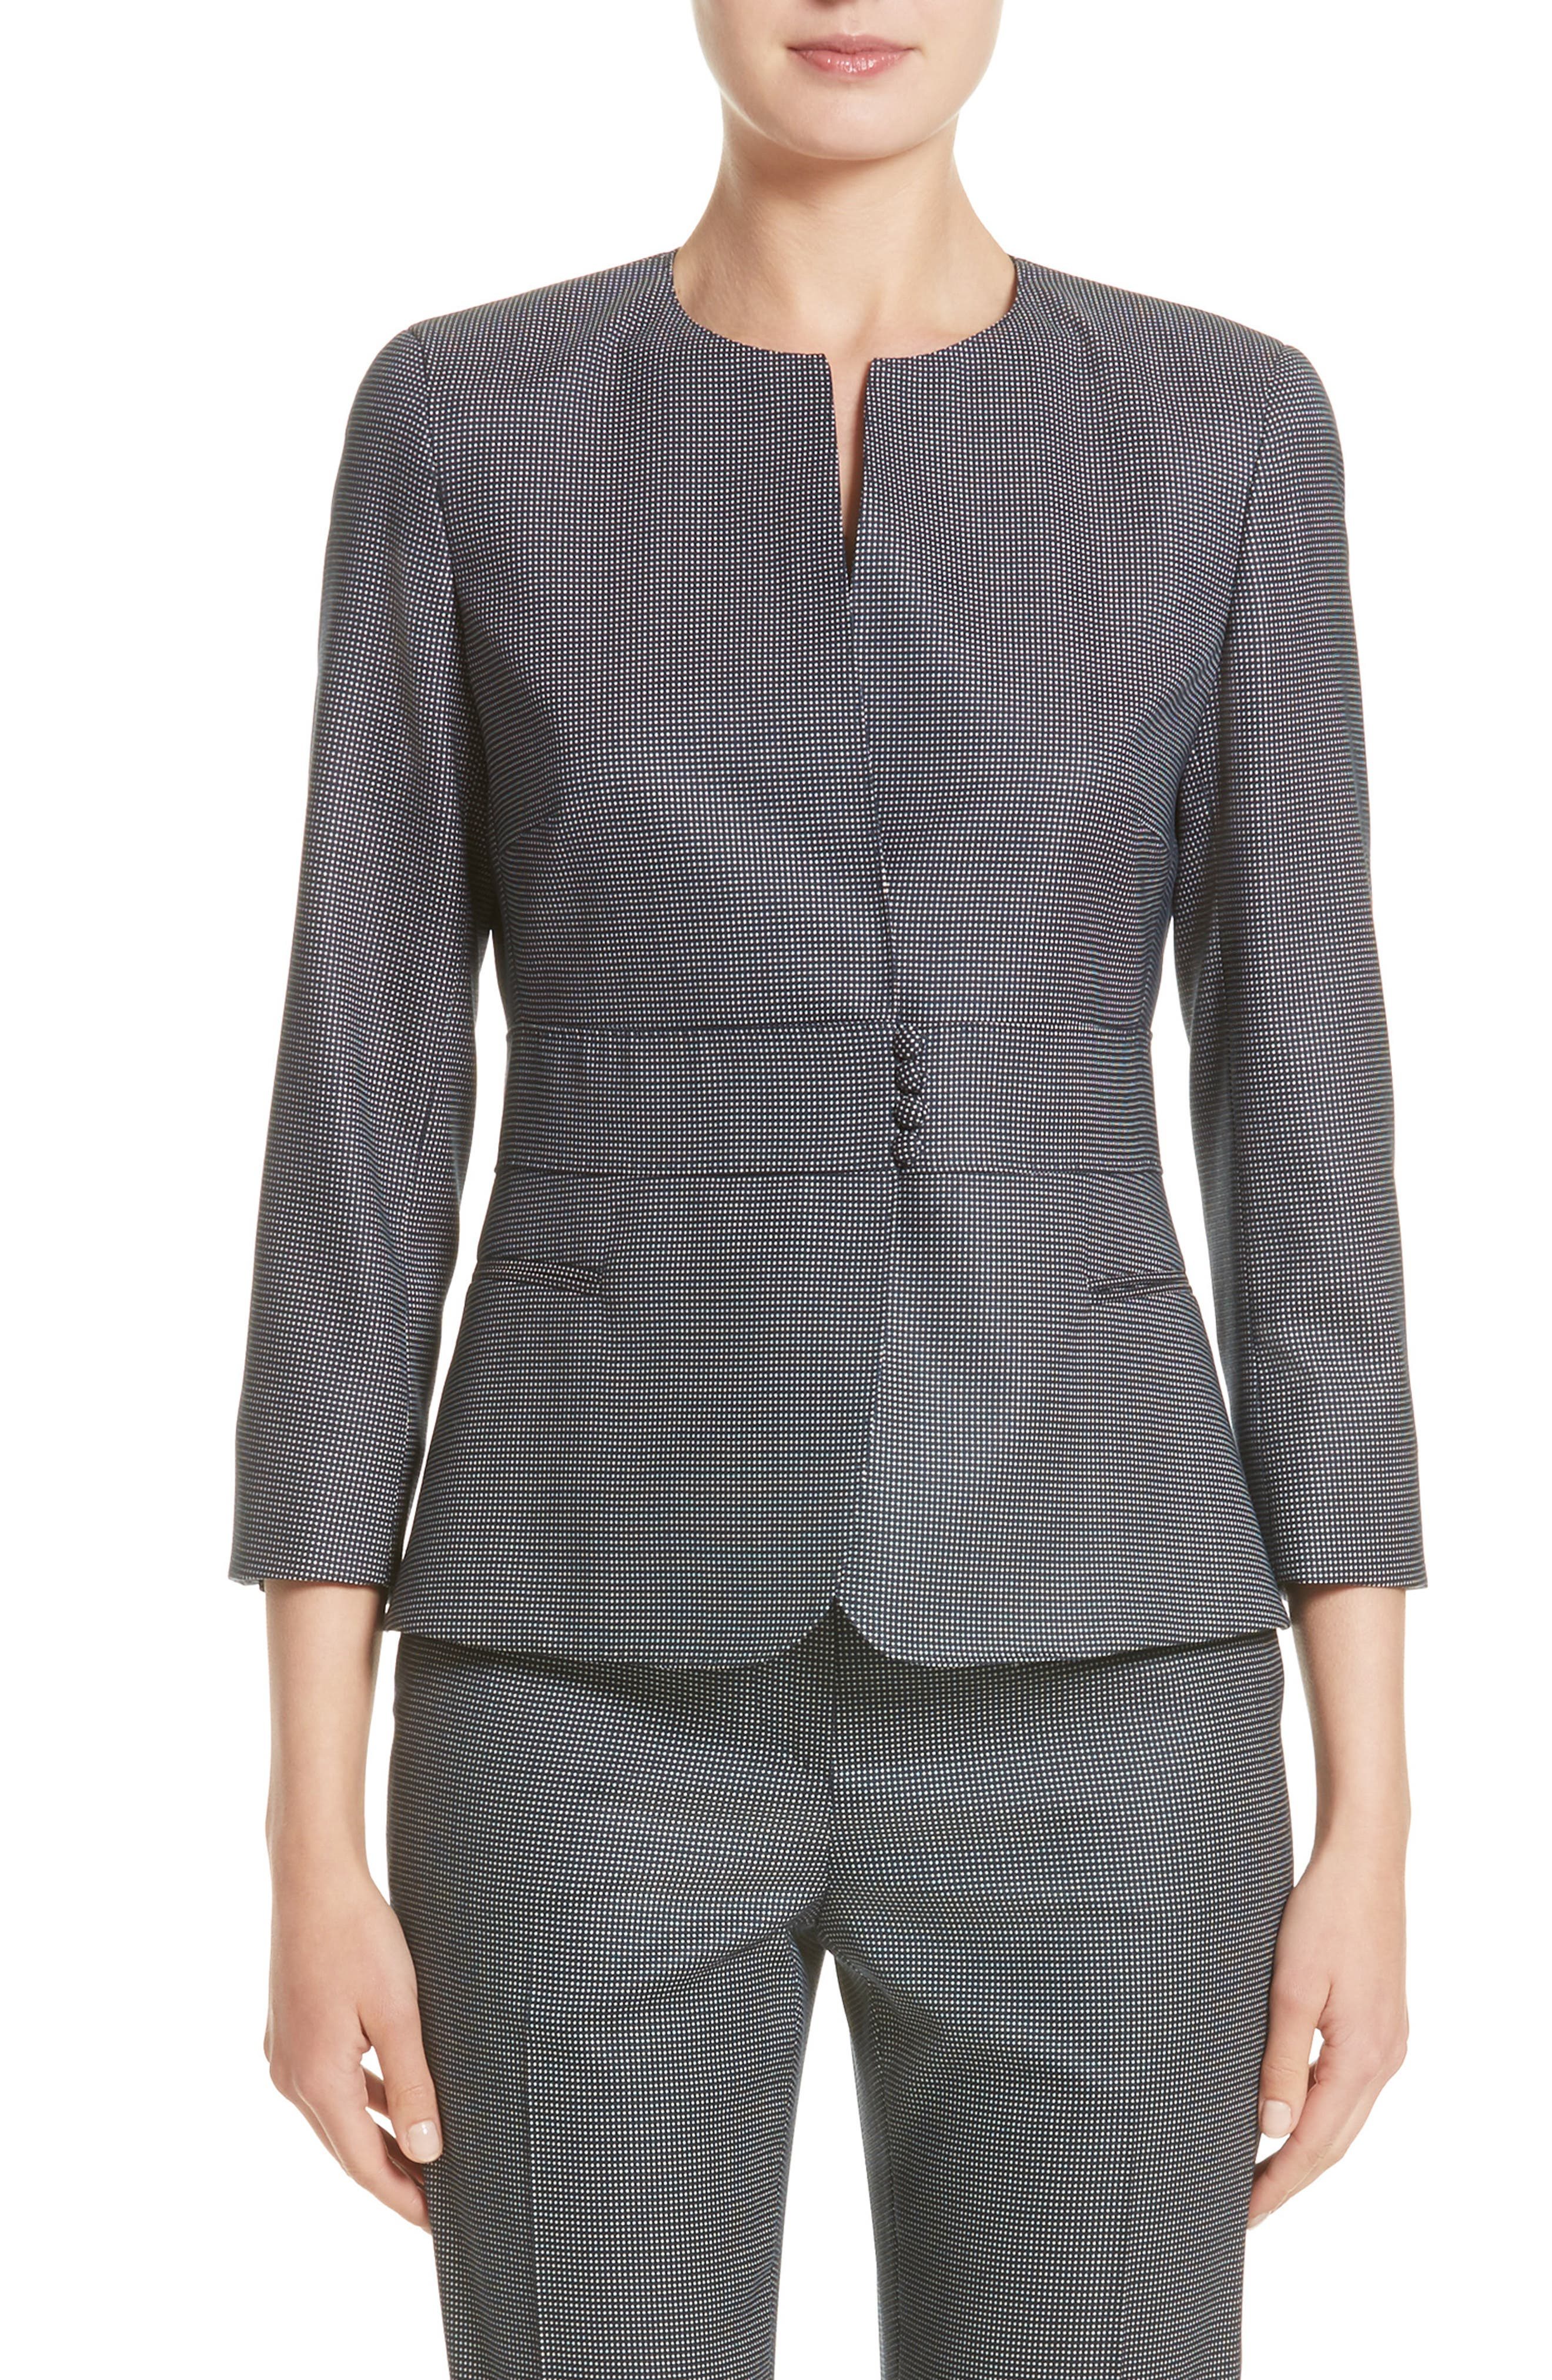 Max Mara Roncolo Stretch Wool & Silk Jacket (Nordstrom Exclusive)